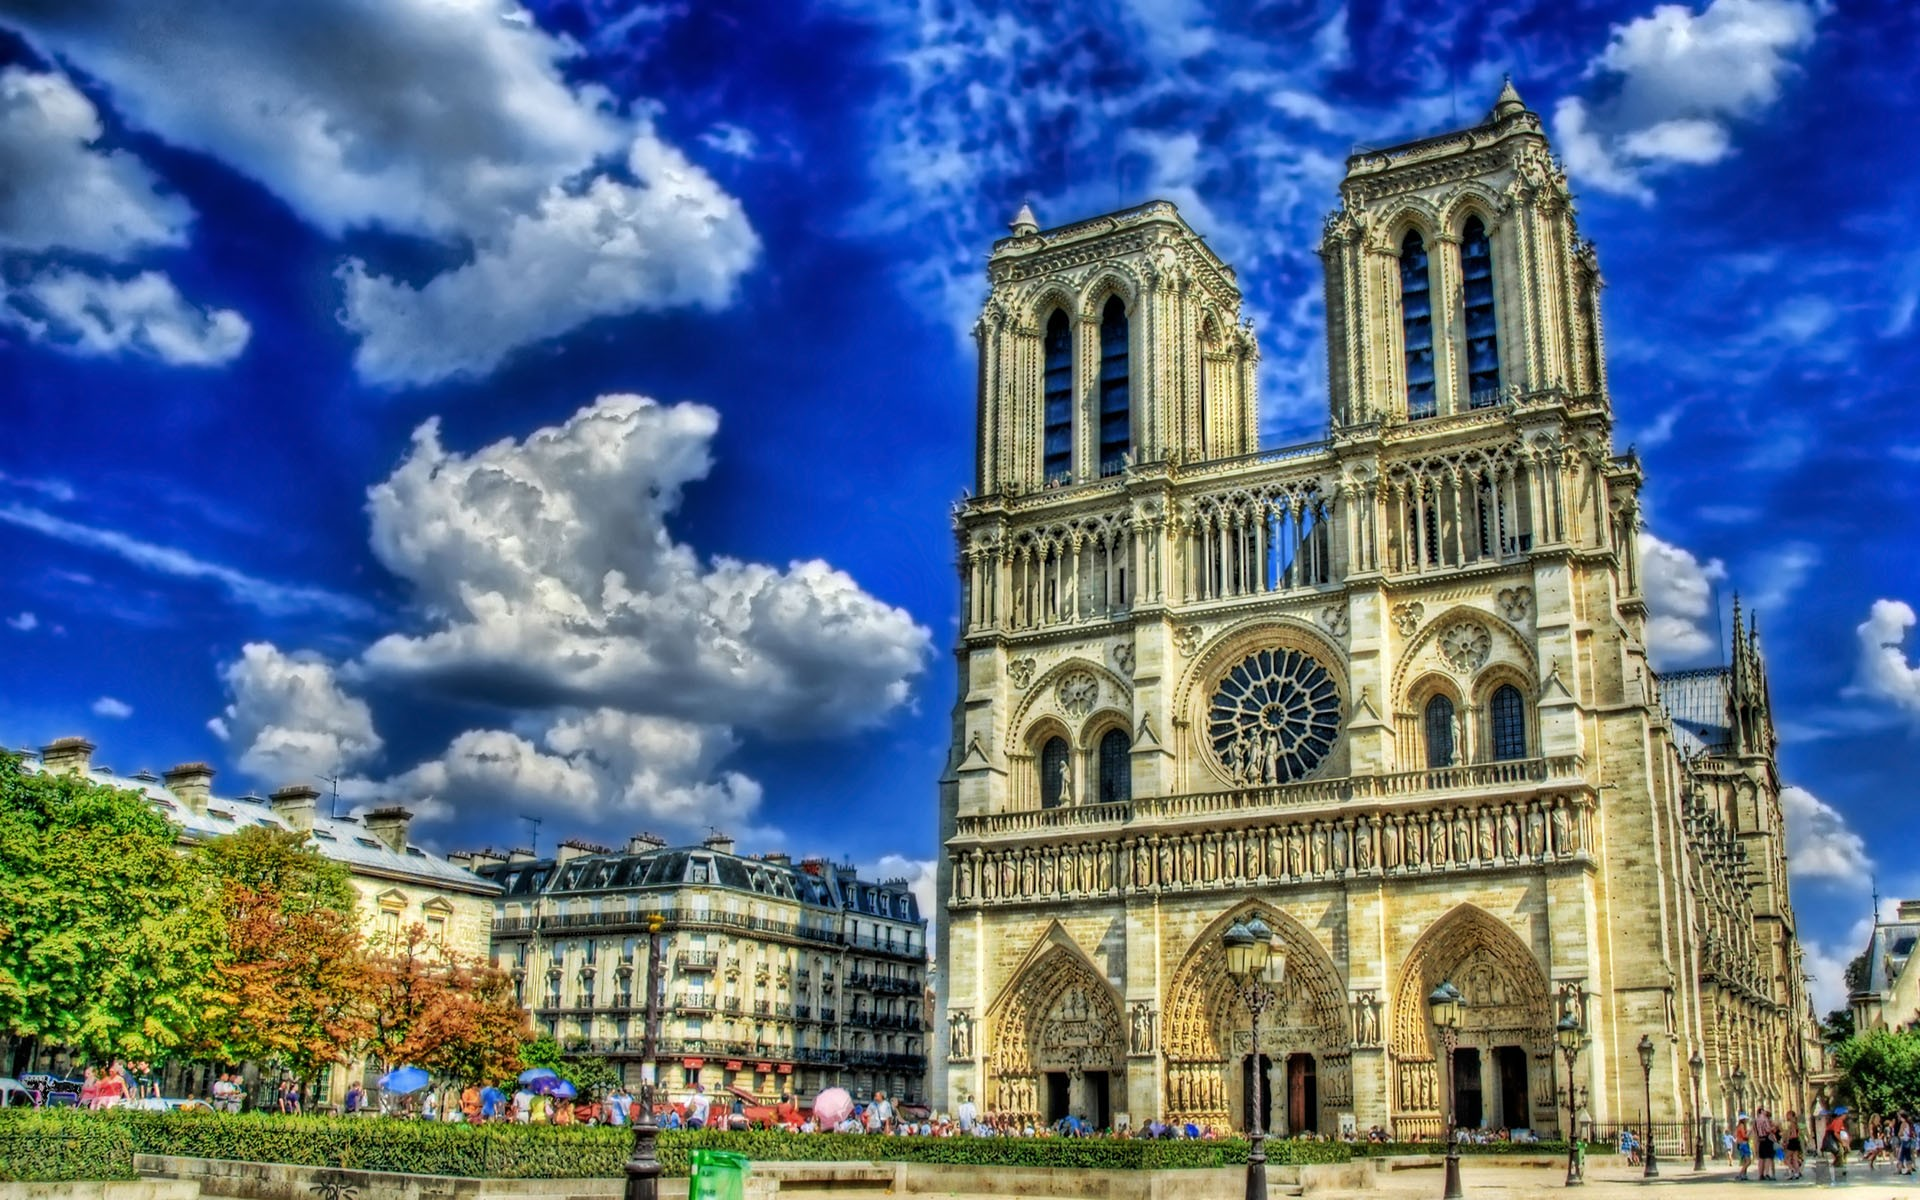 notre dame paris - photo #37